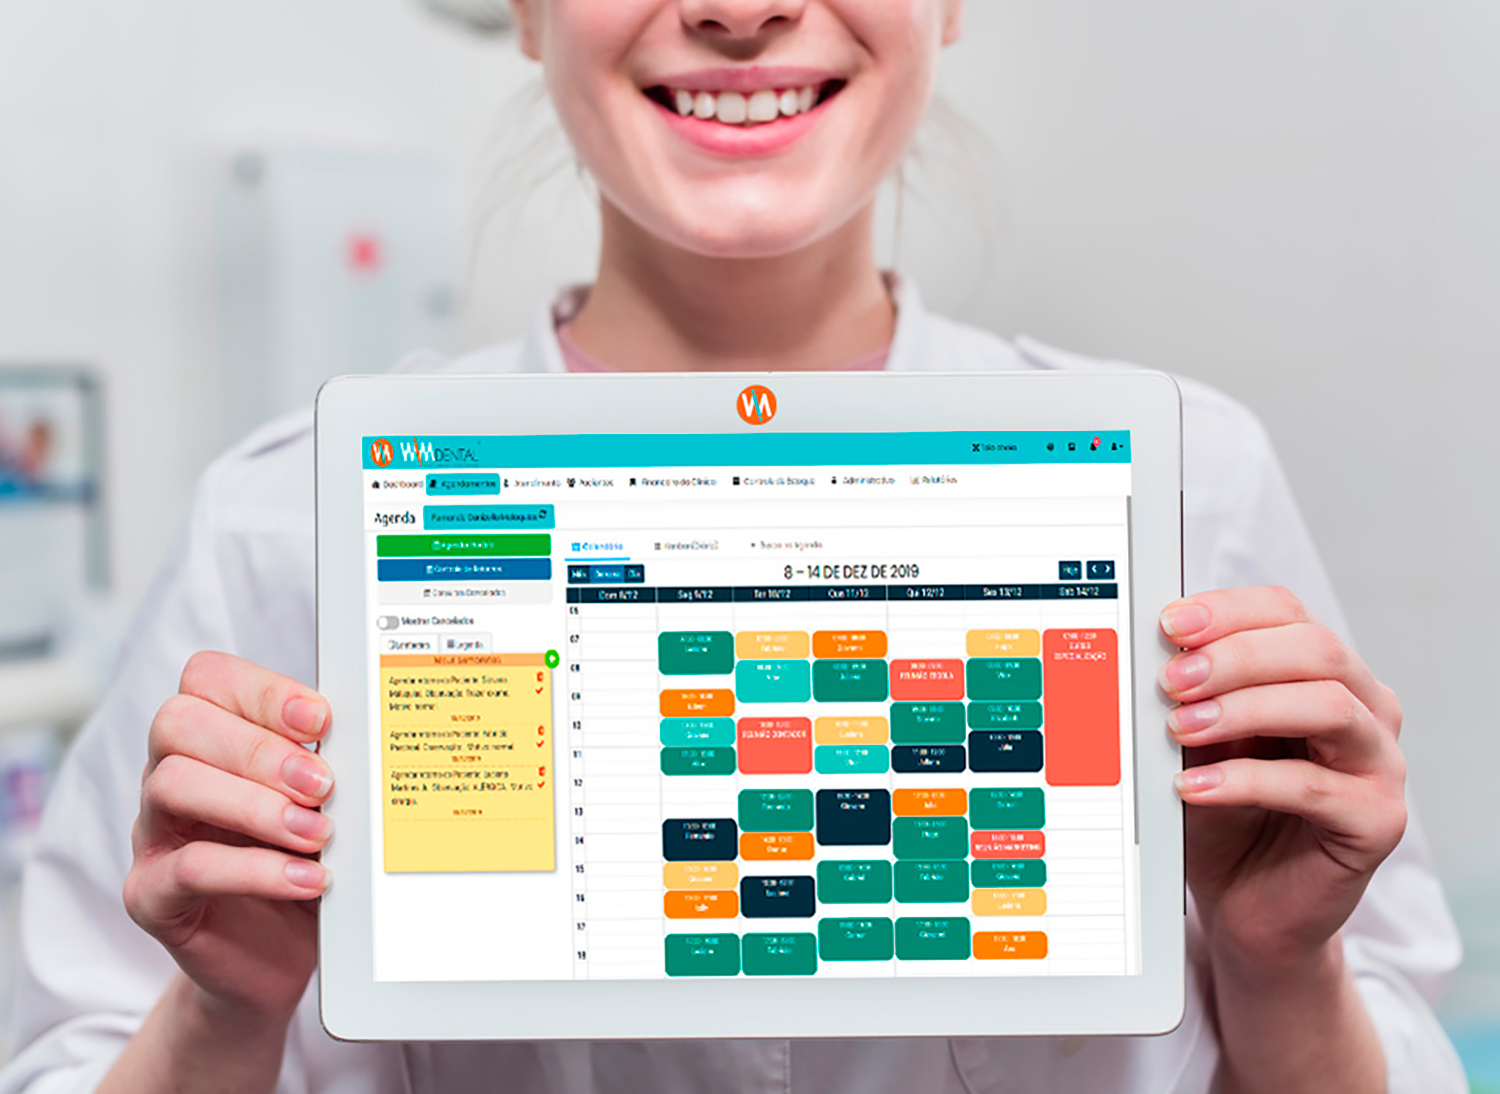 WIM Dental - The Smart Software